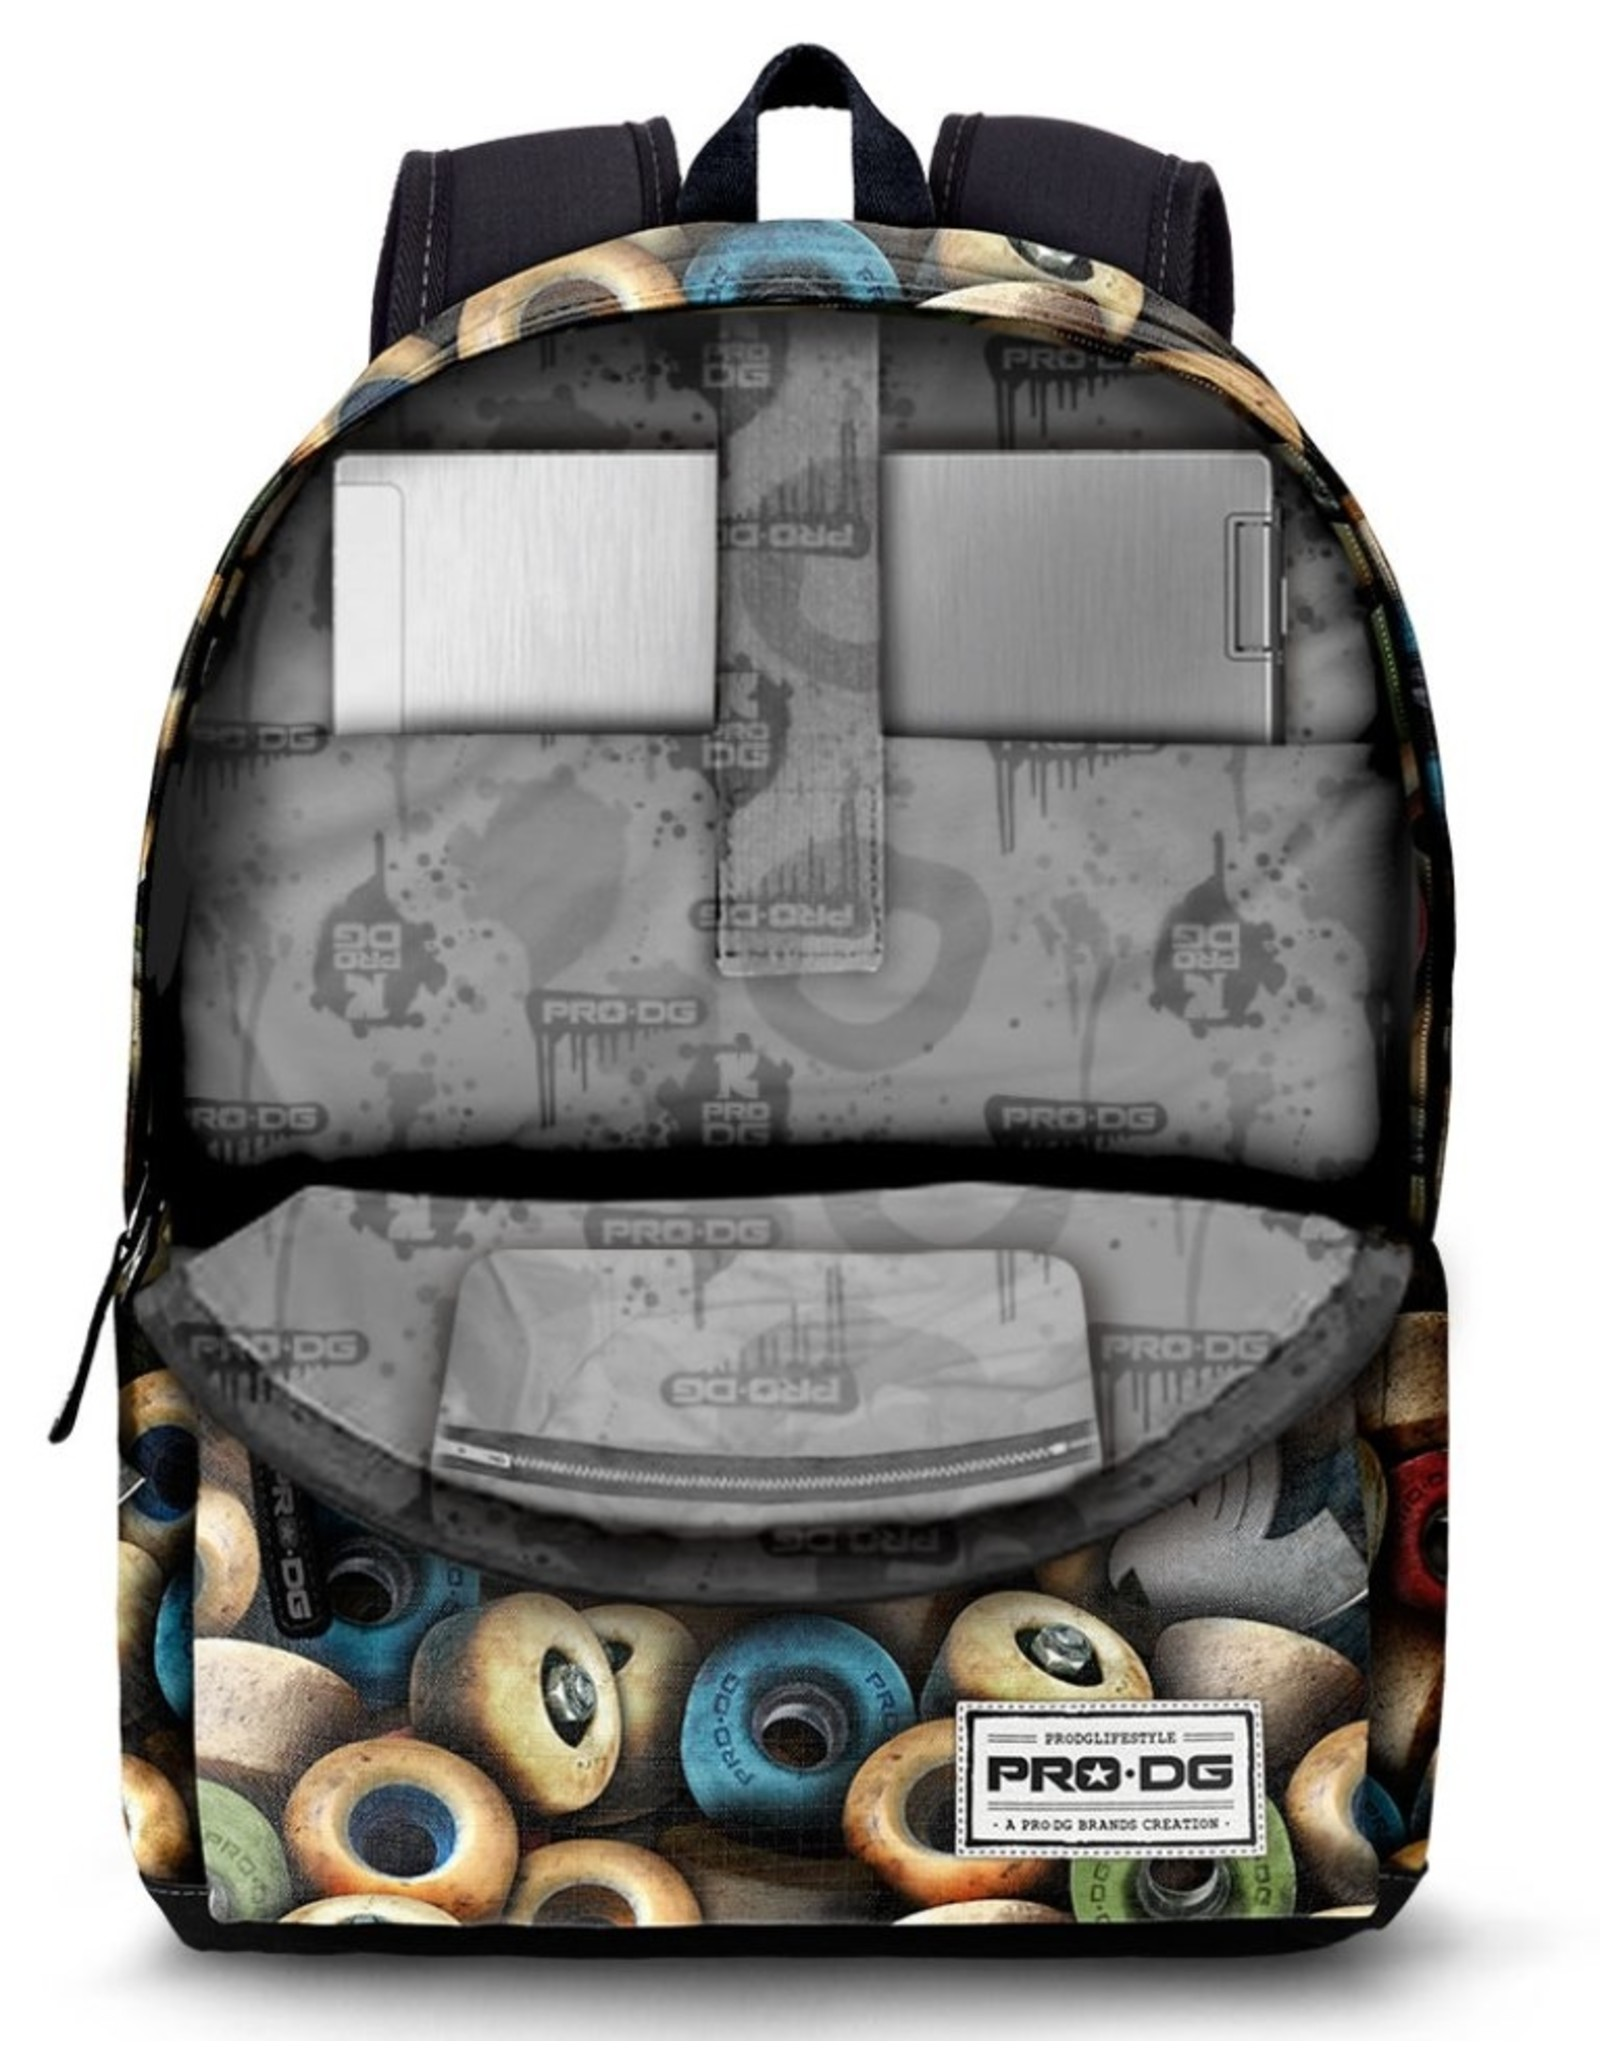 Pro-DG Backpacks and fanny bags - Backpack with Skateboard print Pro-DG